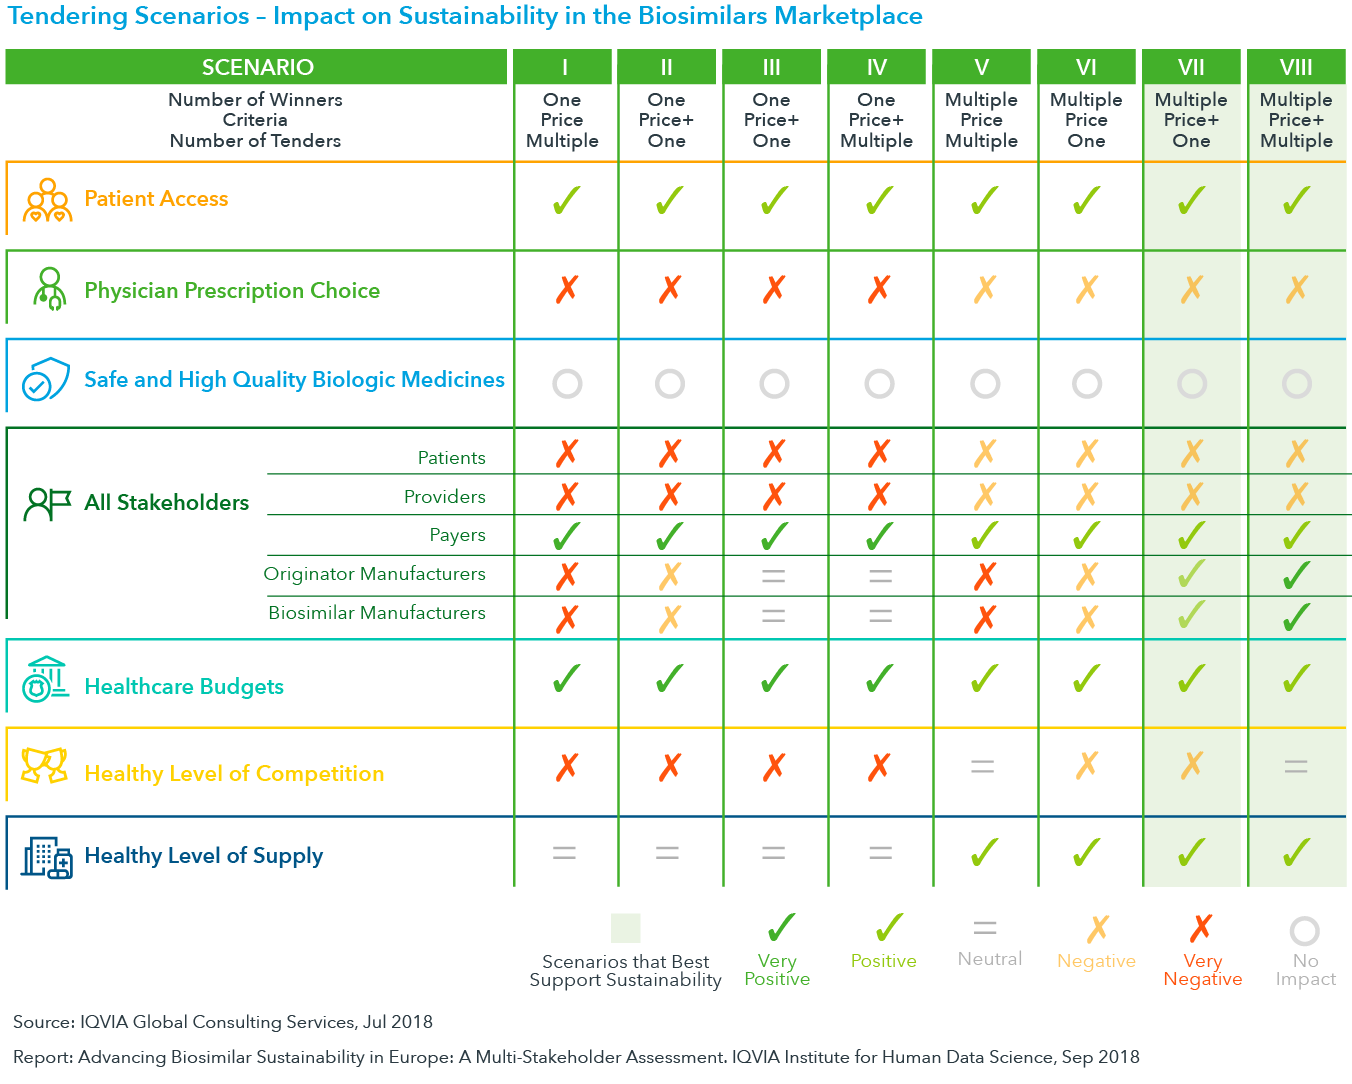 Chart 20: Tendering Scenarios – Impact on Sustainability in the Biosimilars Marketplace